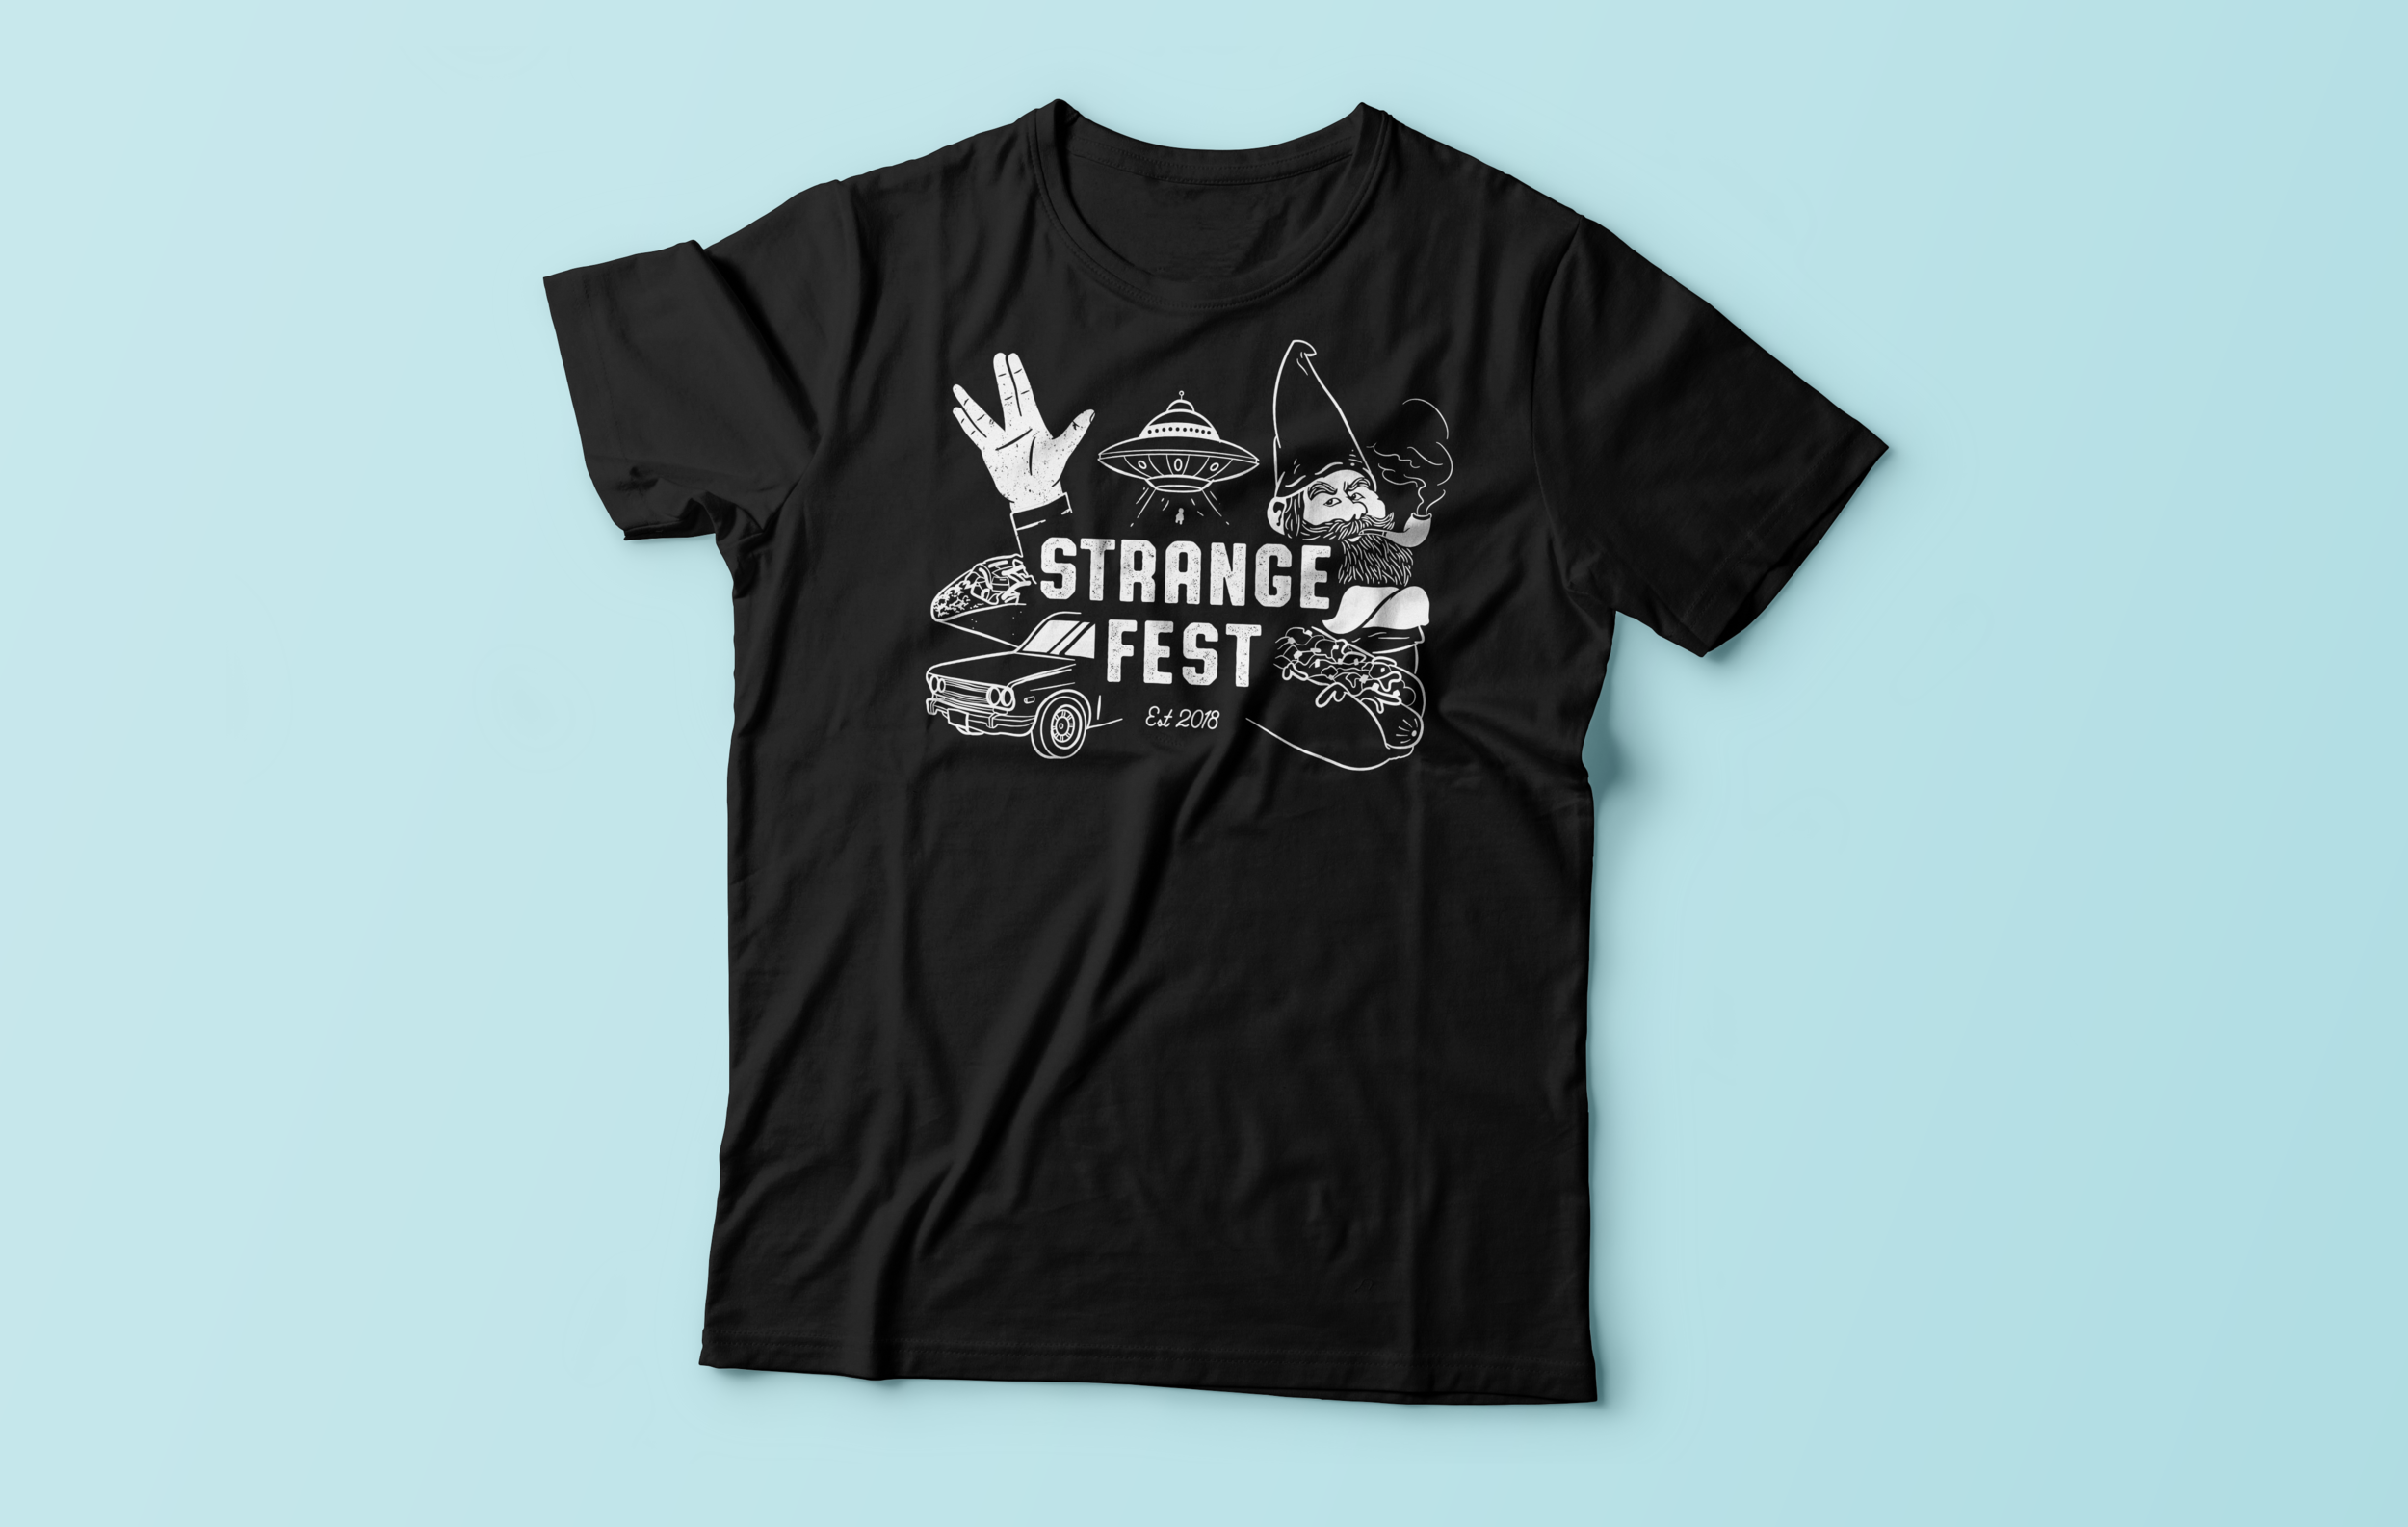 StrangeFest T-Shirts - You can now pre-order a StrangeFest shirt. All proceeds will be going to The WARM Place, a nonprofit 501(c)(3) agency that provides peer-support groups for children and their families after the death of a loved one.